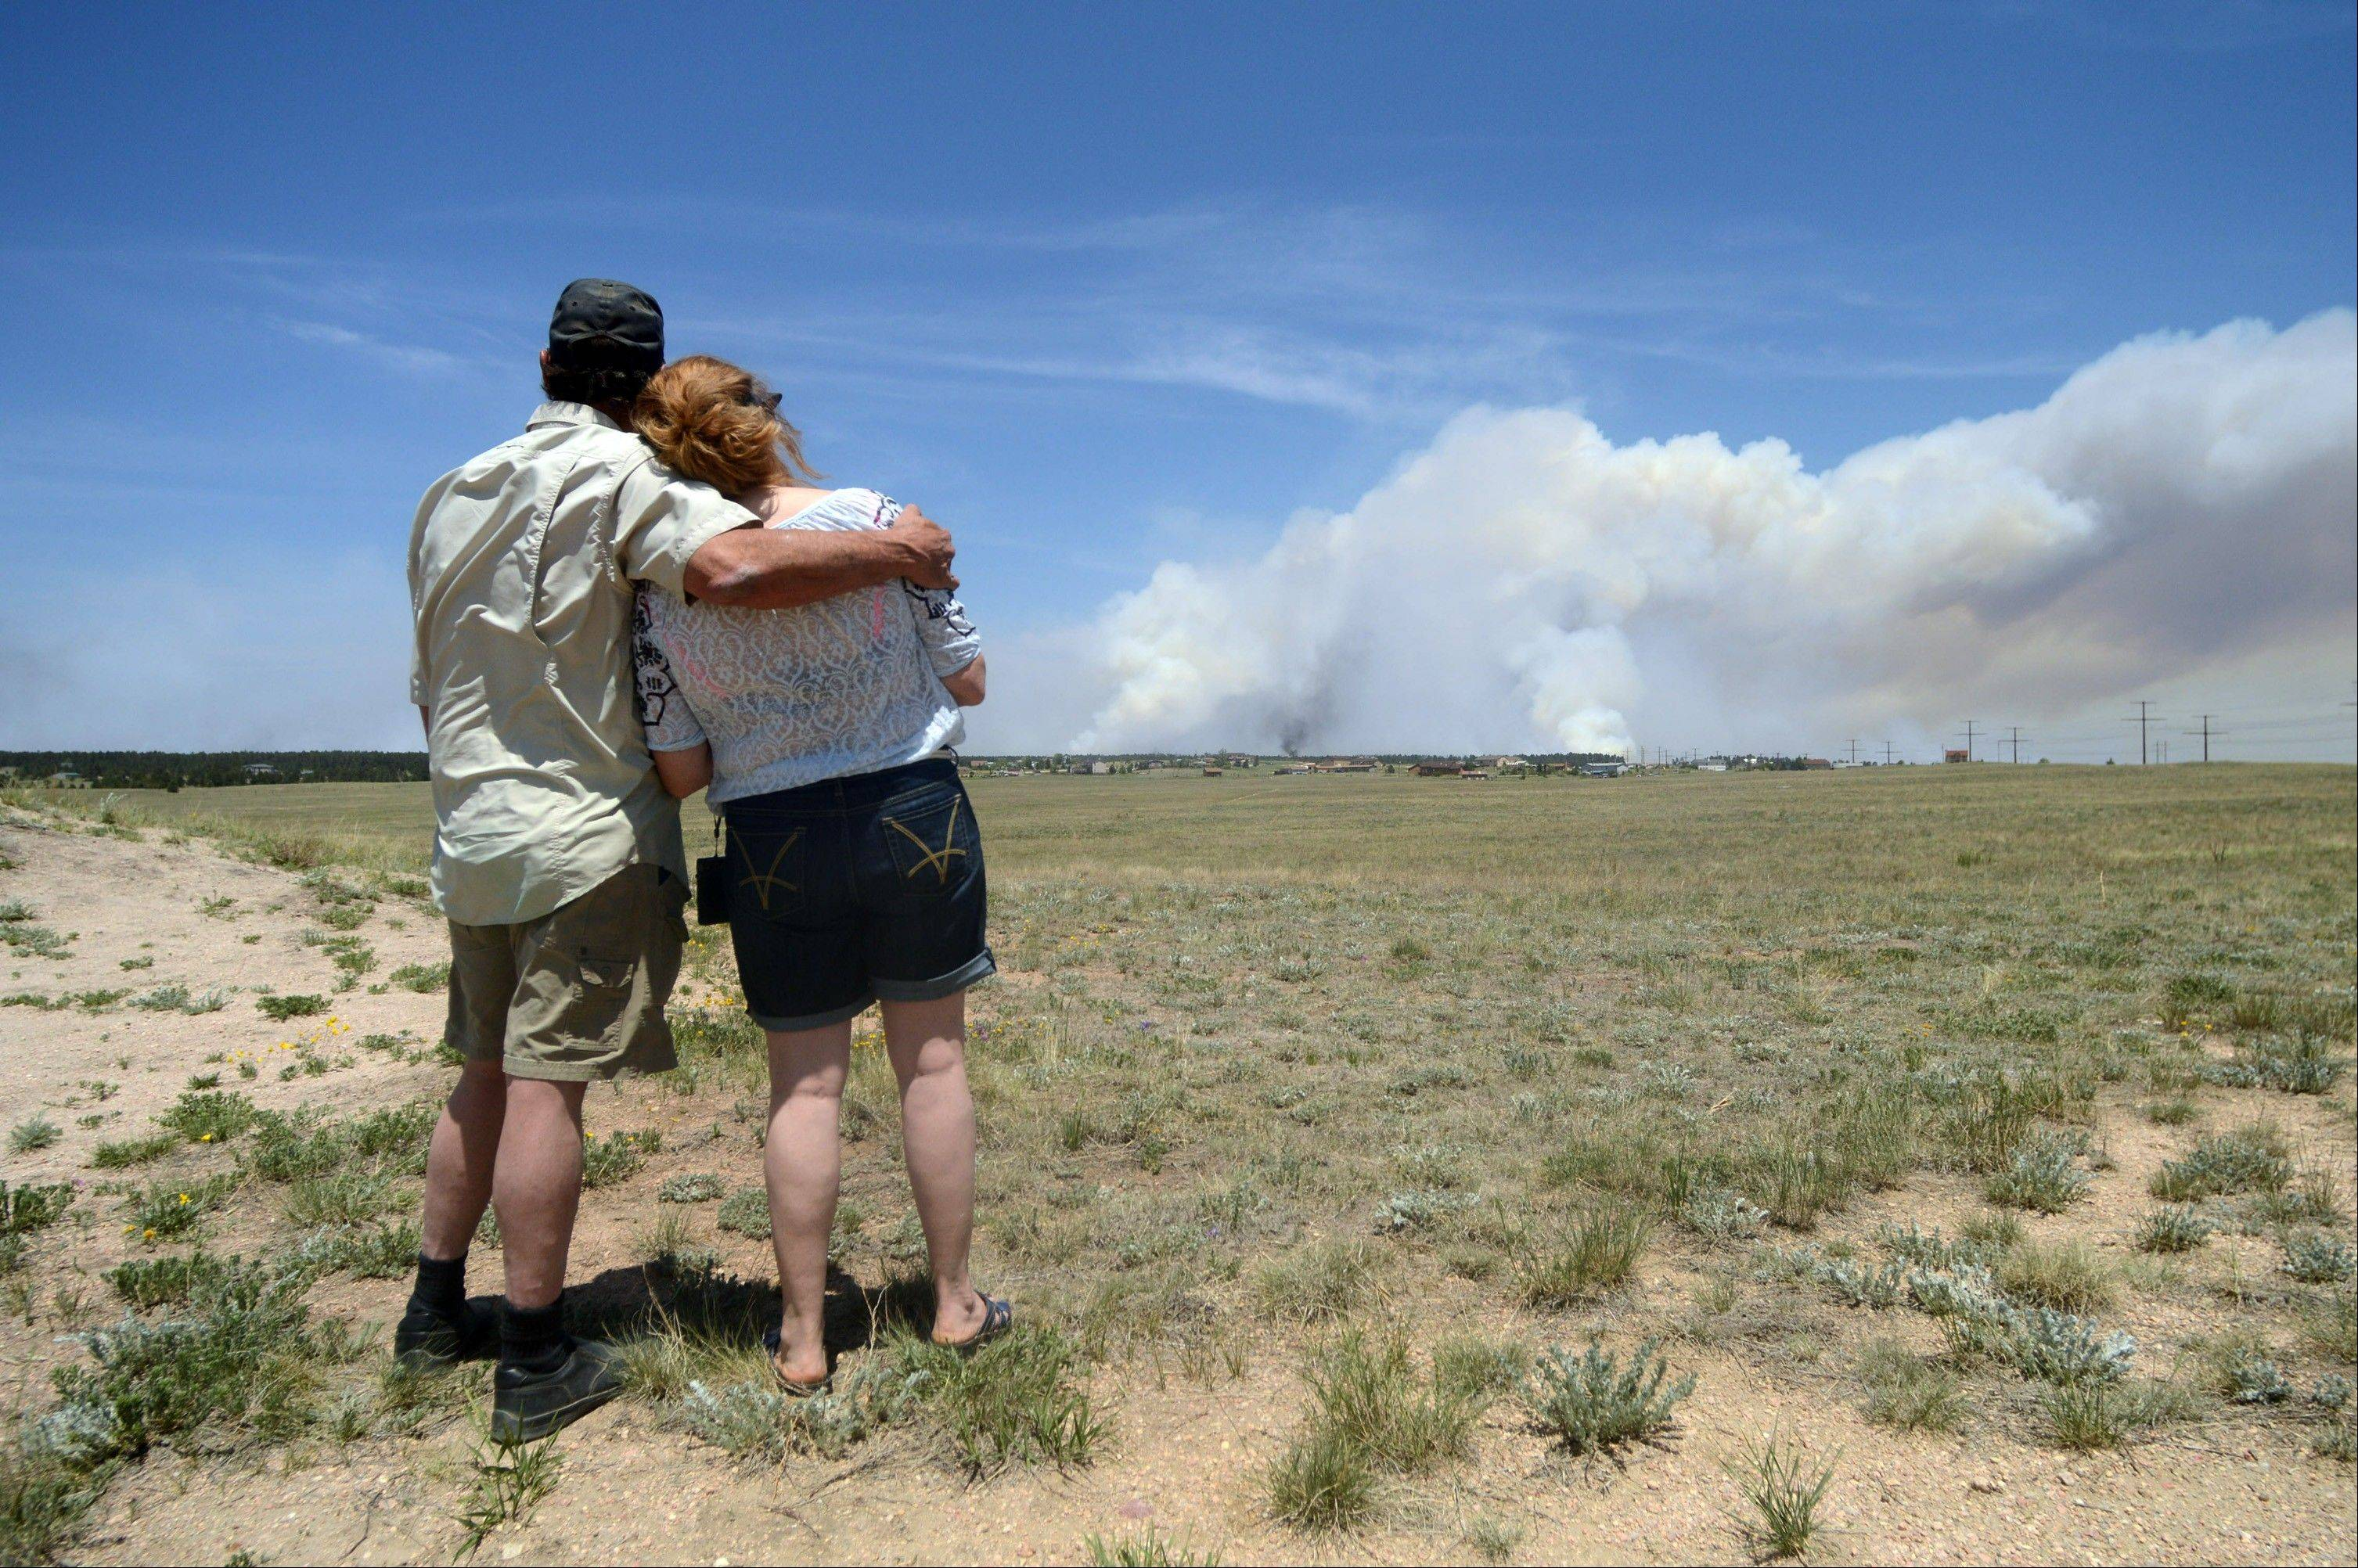 Dave and Linda Burgess watch as a plume rises near their home on Burgess Road in The Black Forest on Wednesday, June 12, 2013 near Colorado Springs, Colo. They were not sure if their home survived the fire.